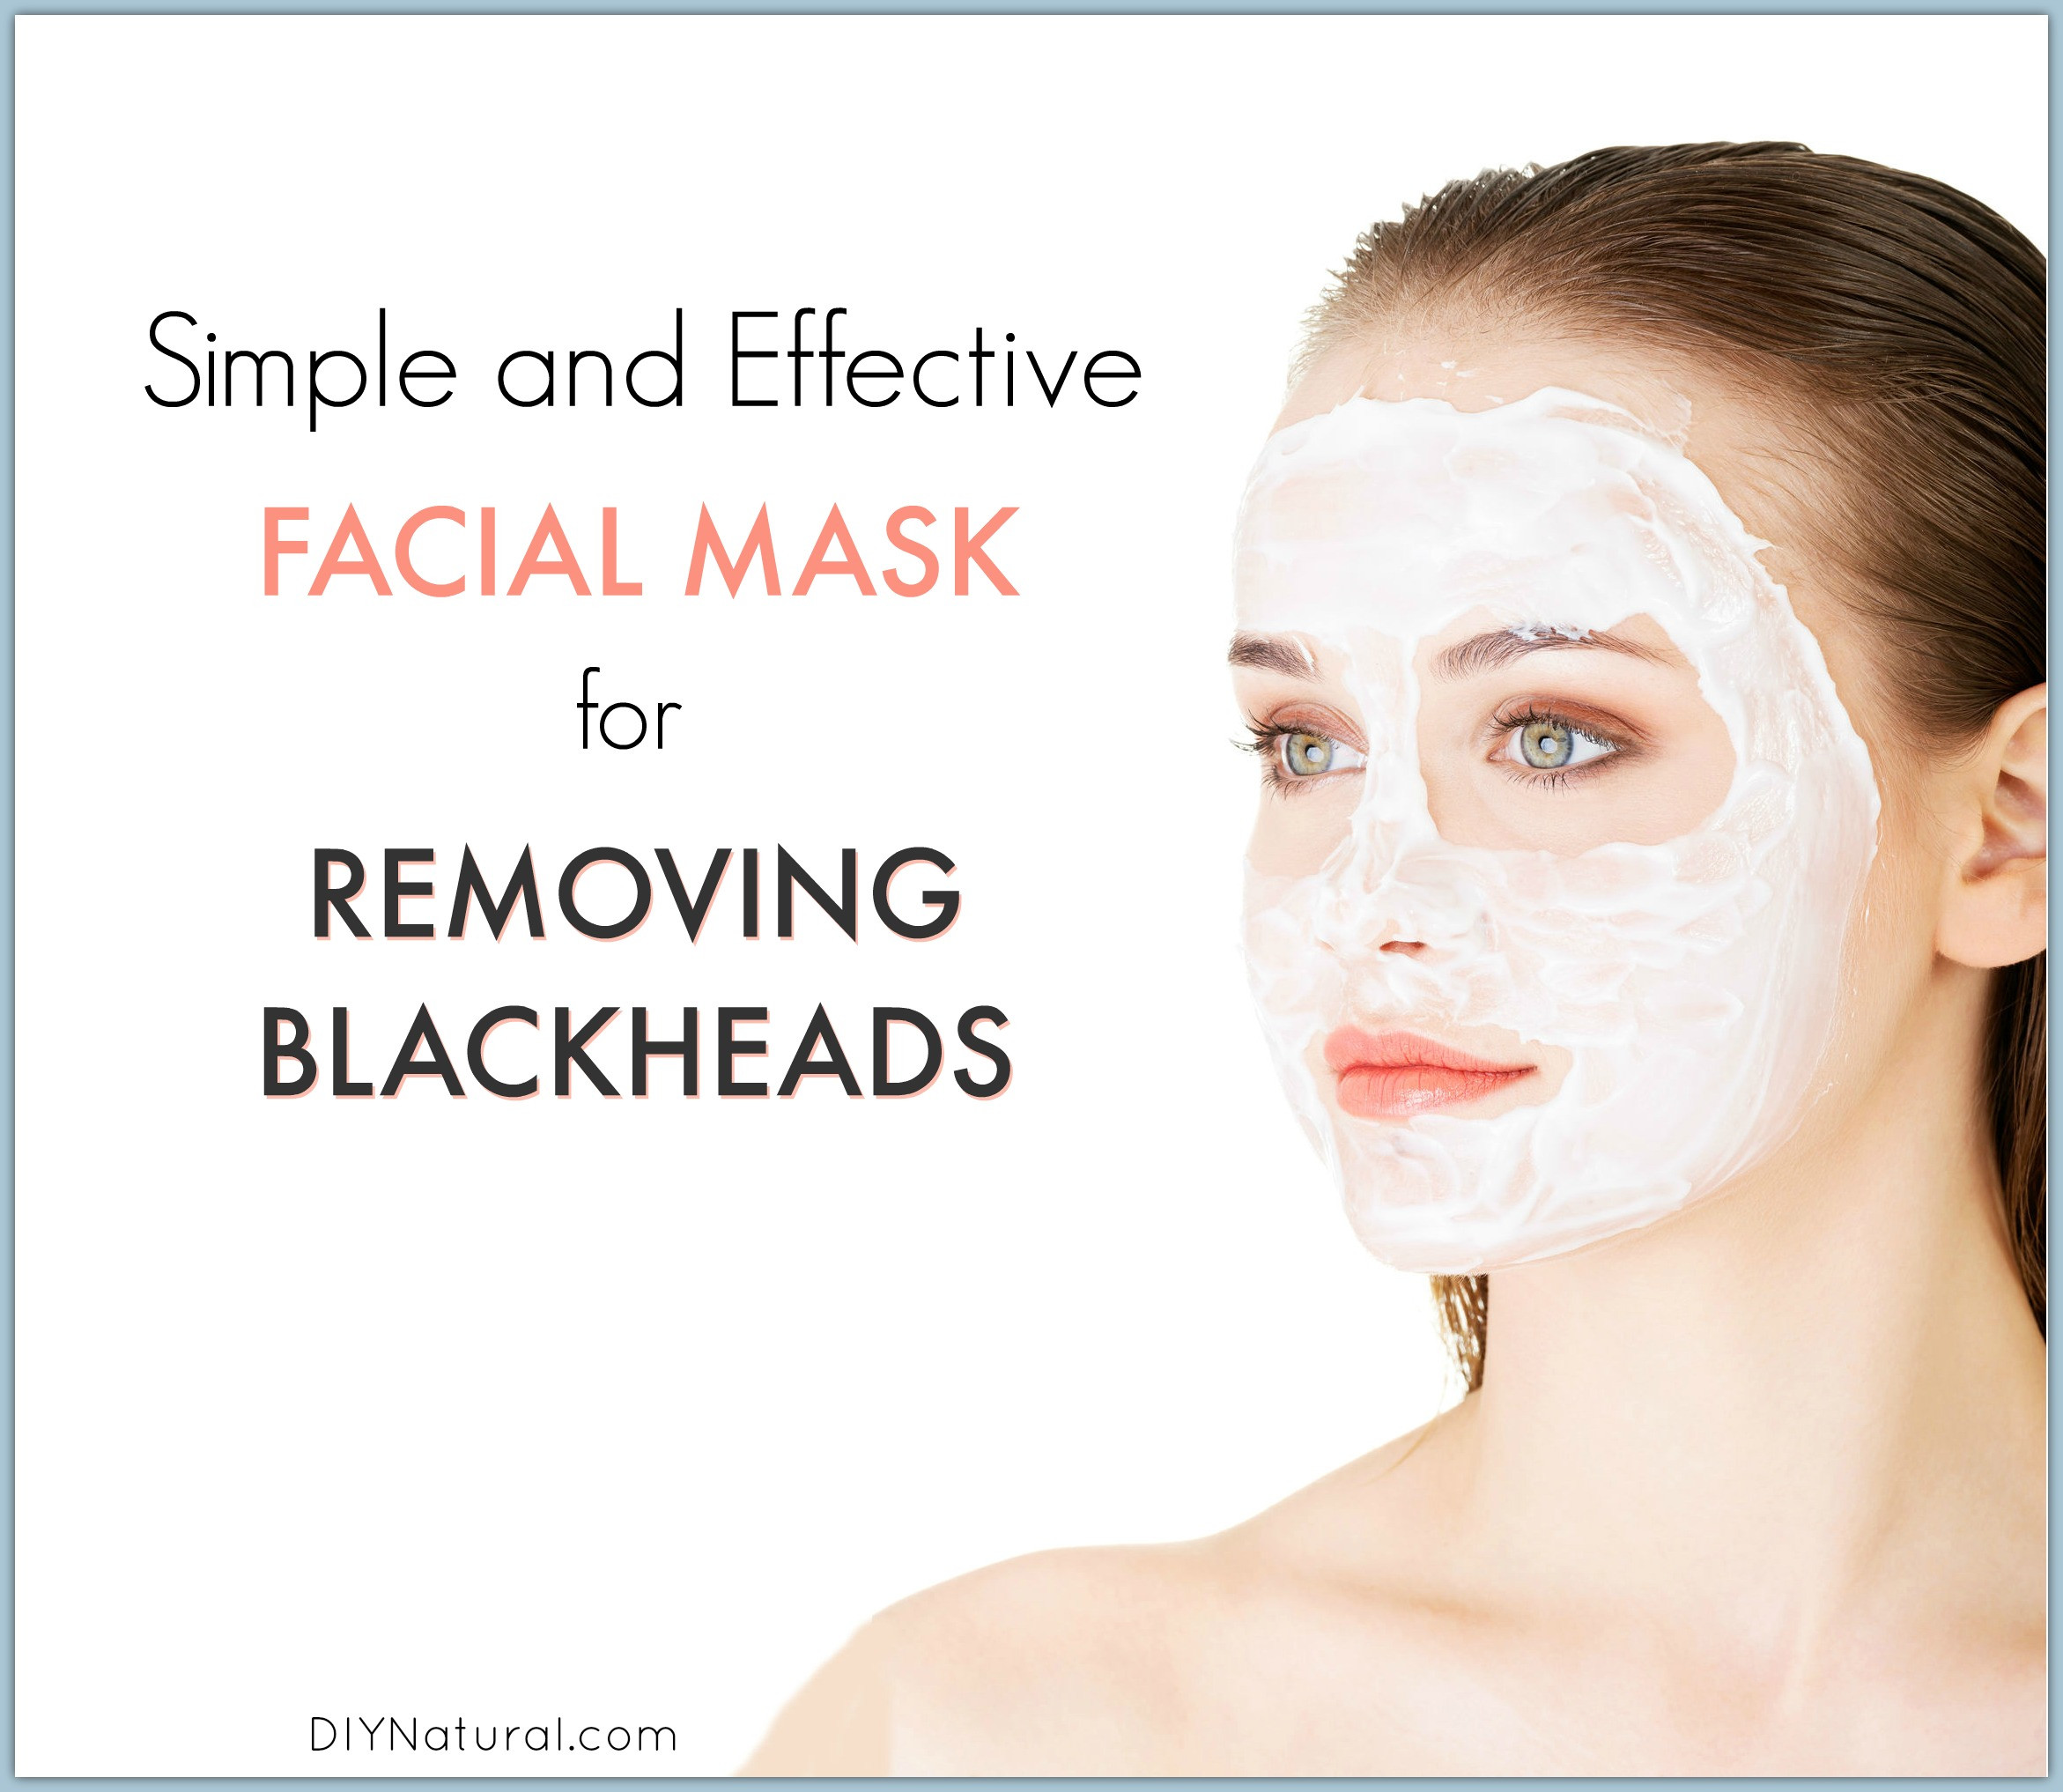 Best ideas about DIY Face Masks For Blackheads . Save or Pin Blackheads A Quick and Easy Homemade Blackhead Mask Now.